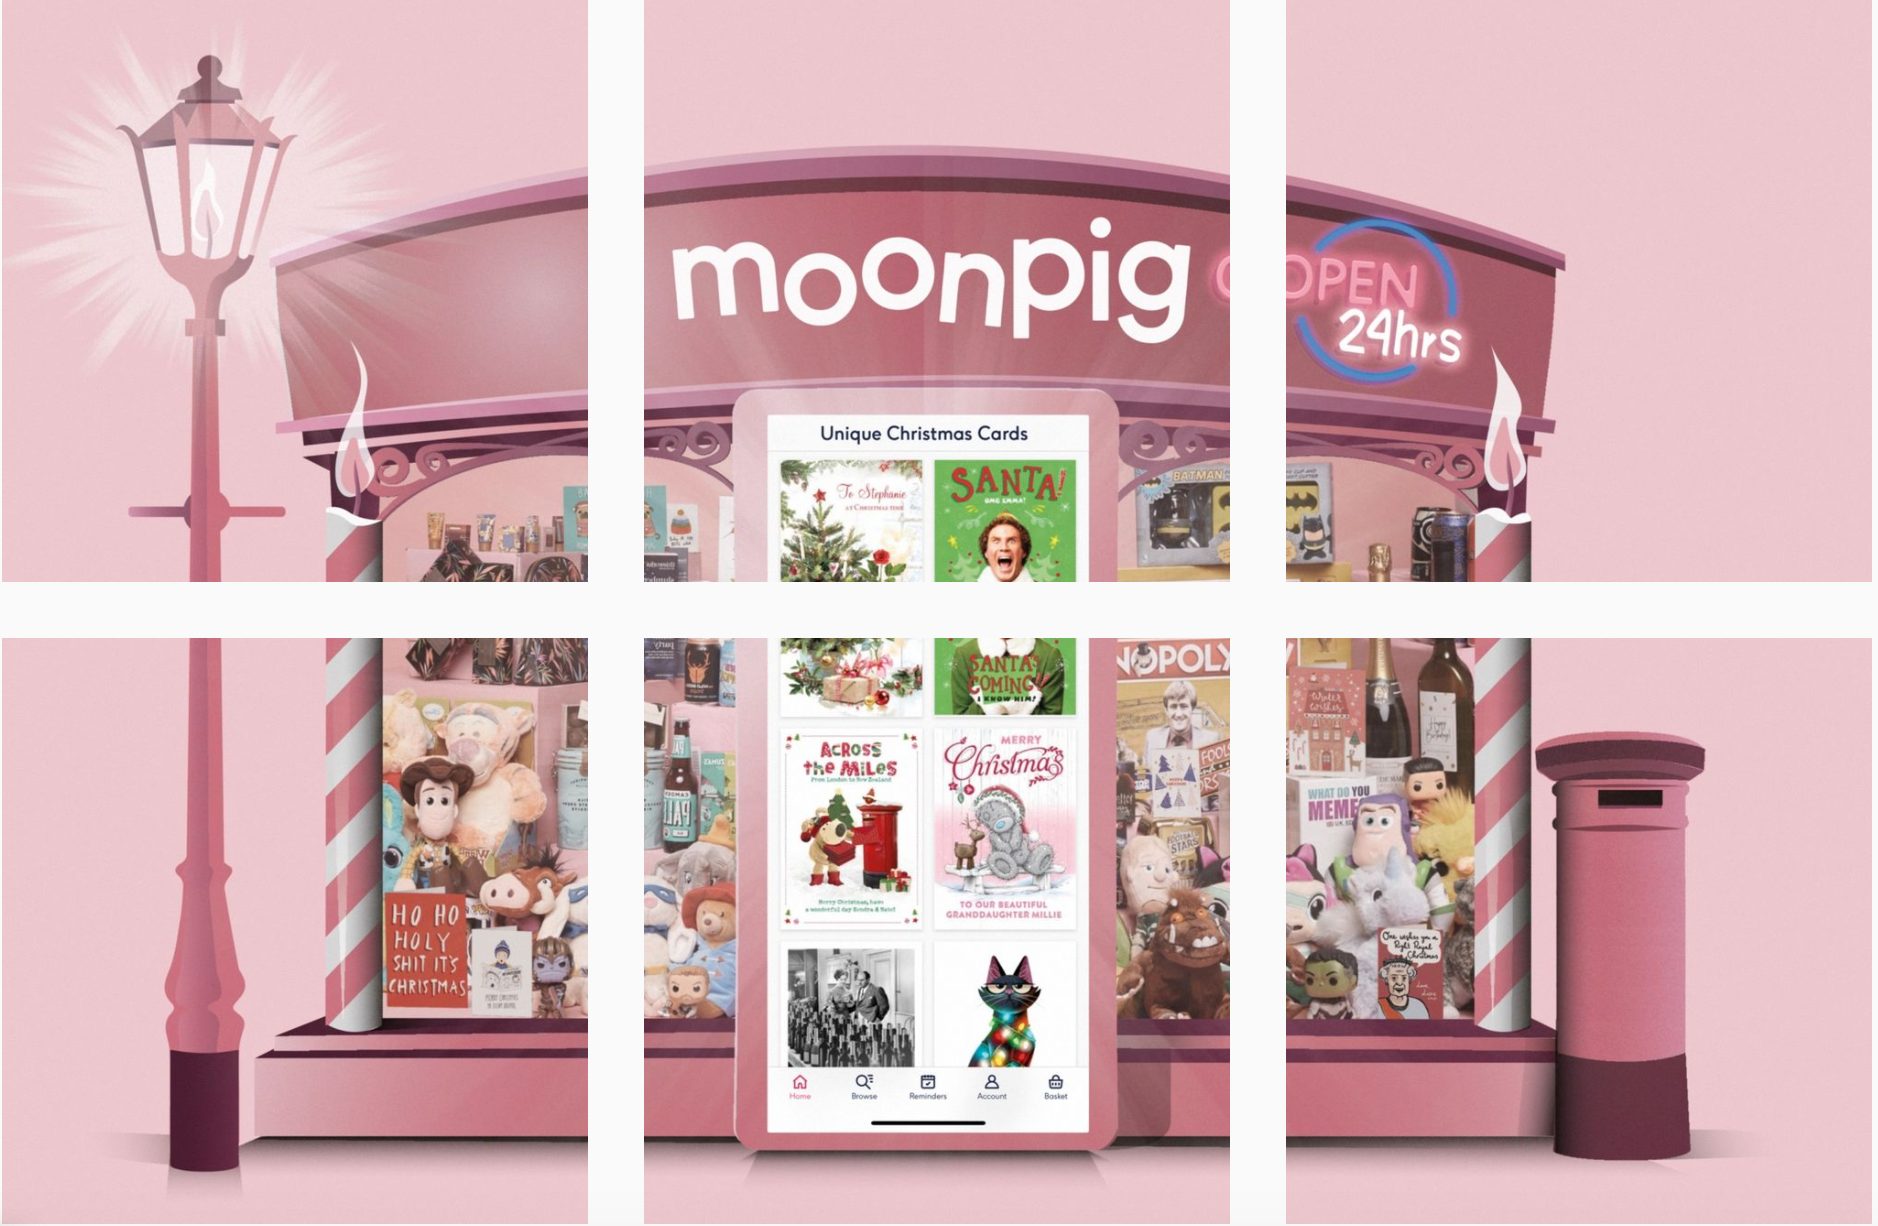 Above: Moonpig Group claims to have had 12.2 million active customers as of October 2020.